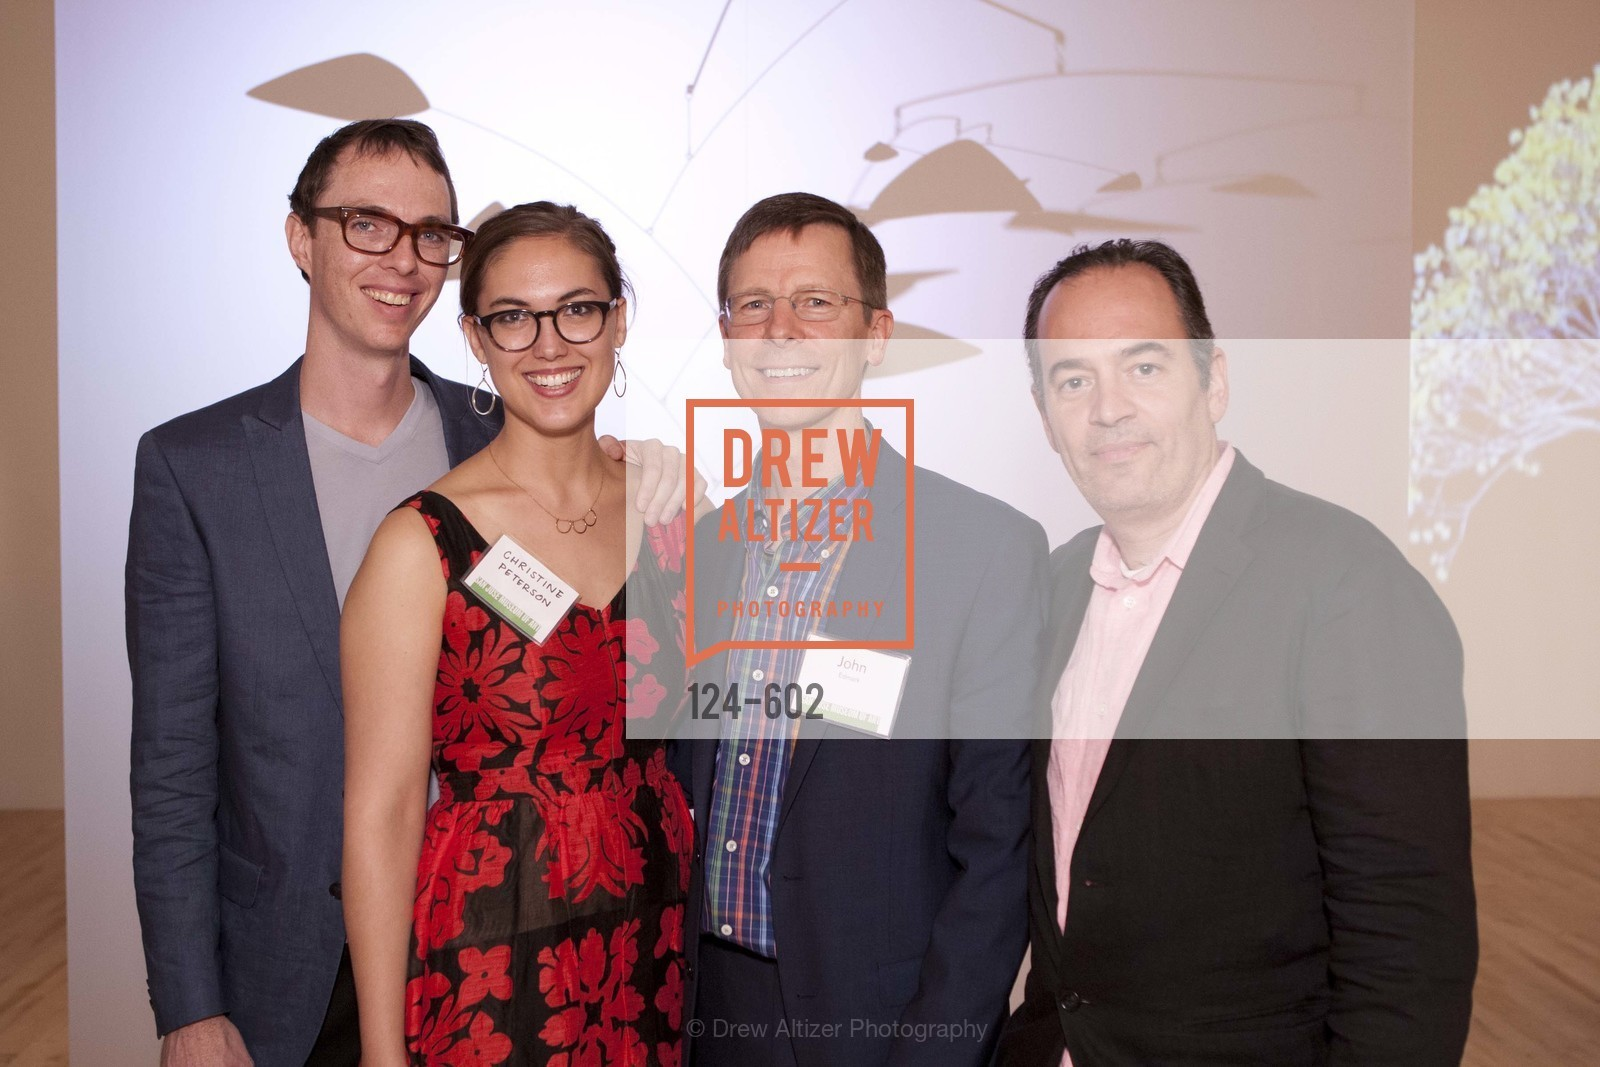 Chris Fraser, Christine Peterson, John Edmark, Paolo Salvagione, SAN JOSE MUSEUM OF ART Fall Reception Opening, US, October 9th, 2014,Drew Altizer, Drew Altizer Photography, full-service event agency, private events, San Francisco photographer, photographer California